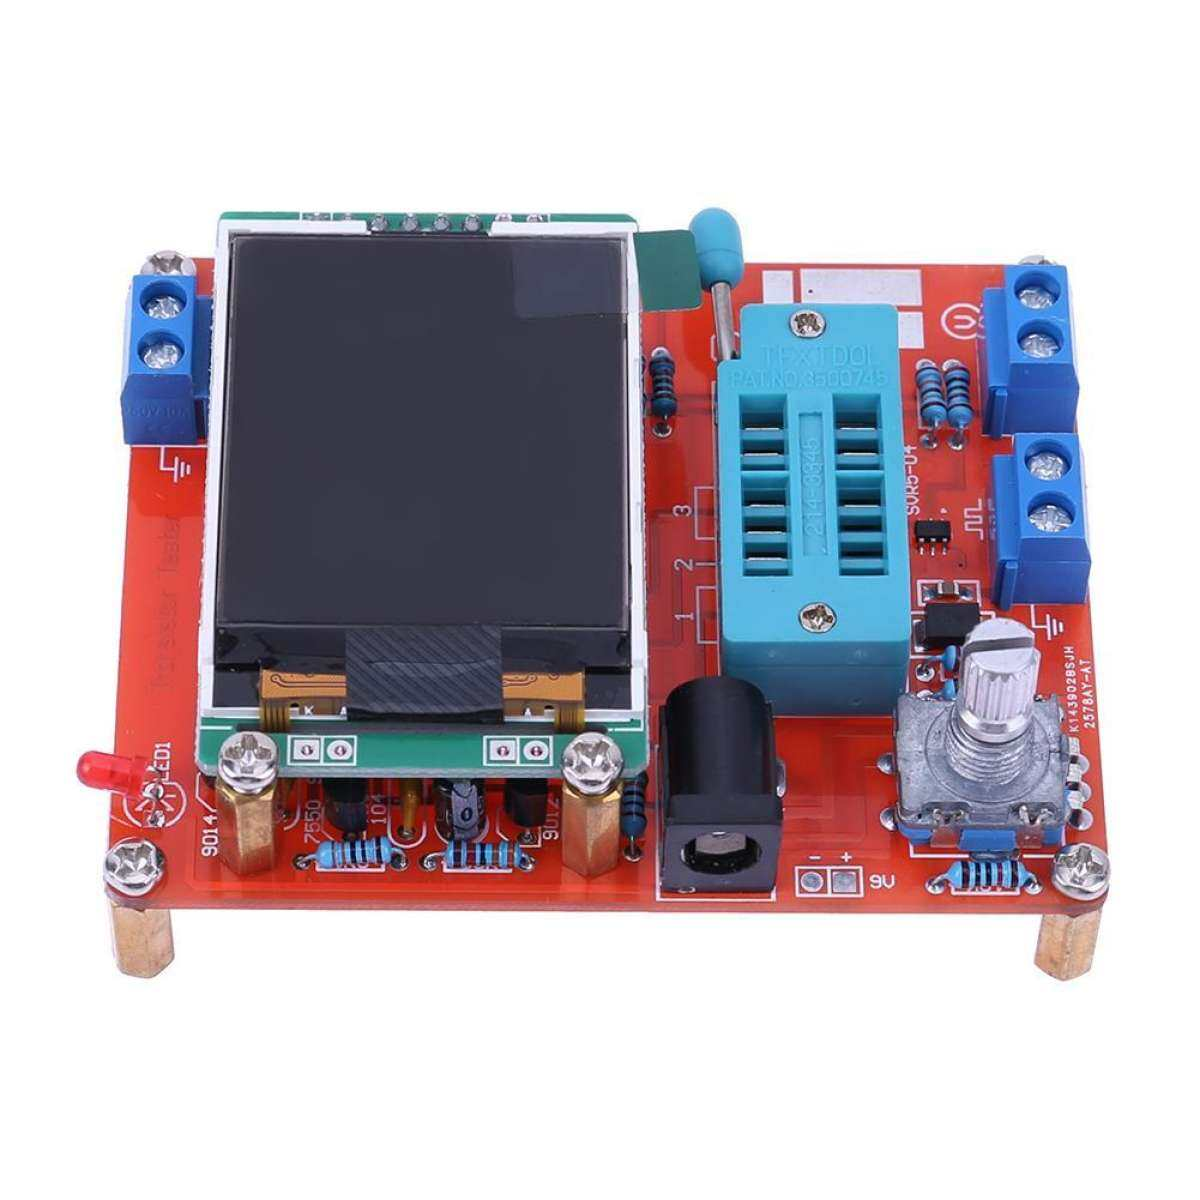 GM328 Transistor Tester Frequency Measurement Instrument PWM Square Wave